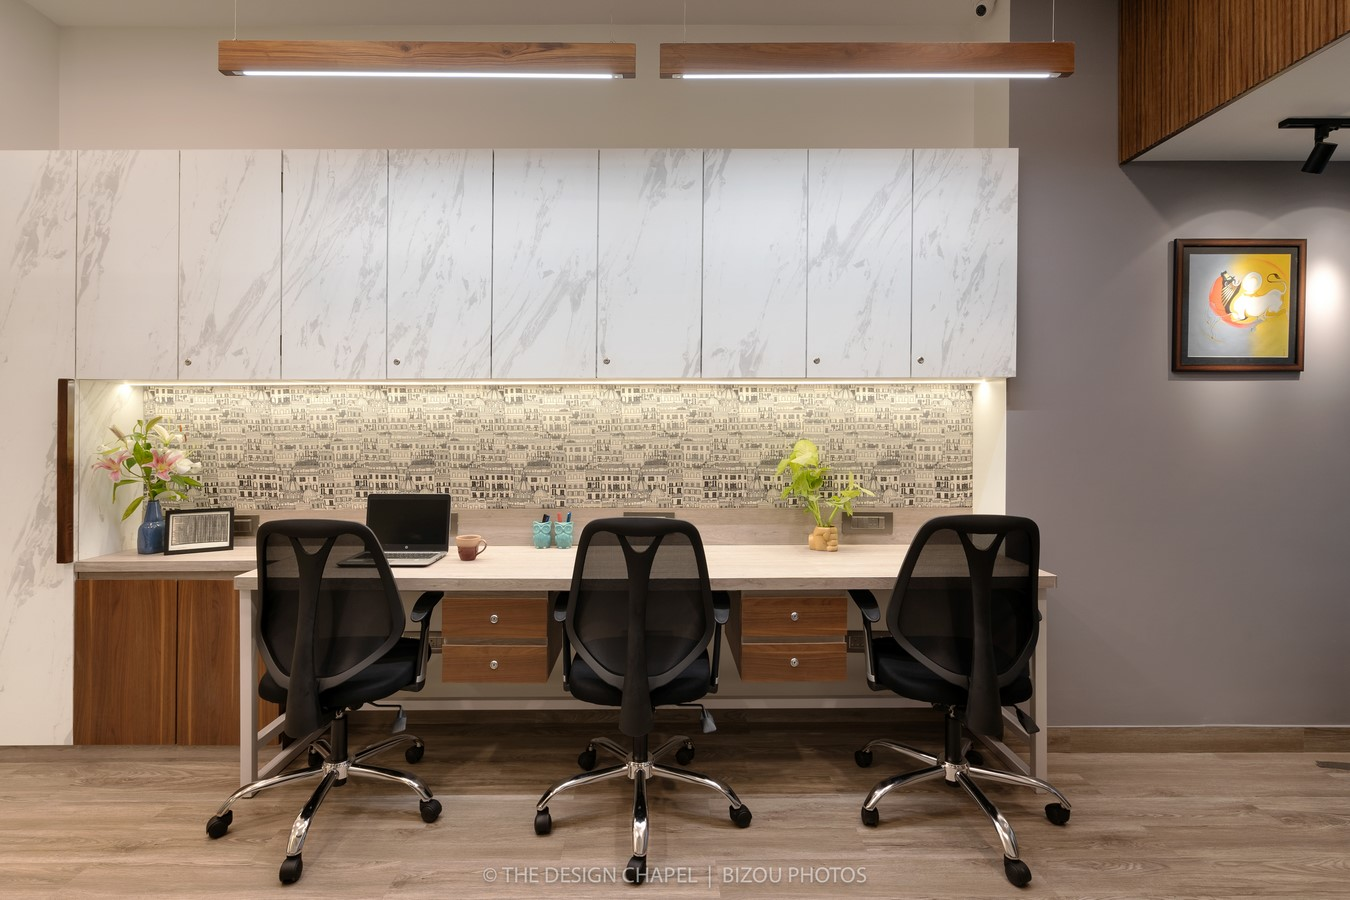 The Atlas Office by The Design Chapel - Sheet2